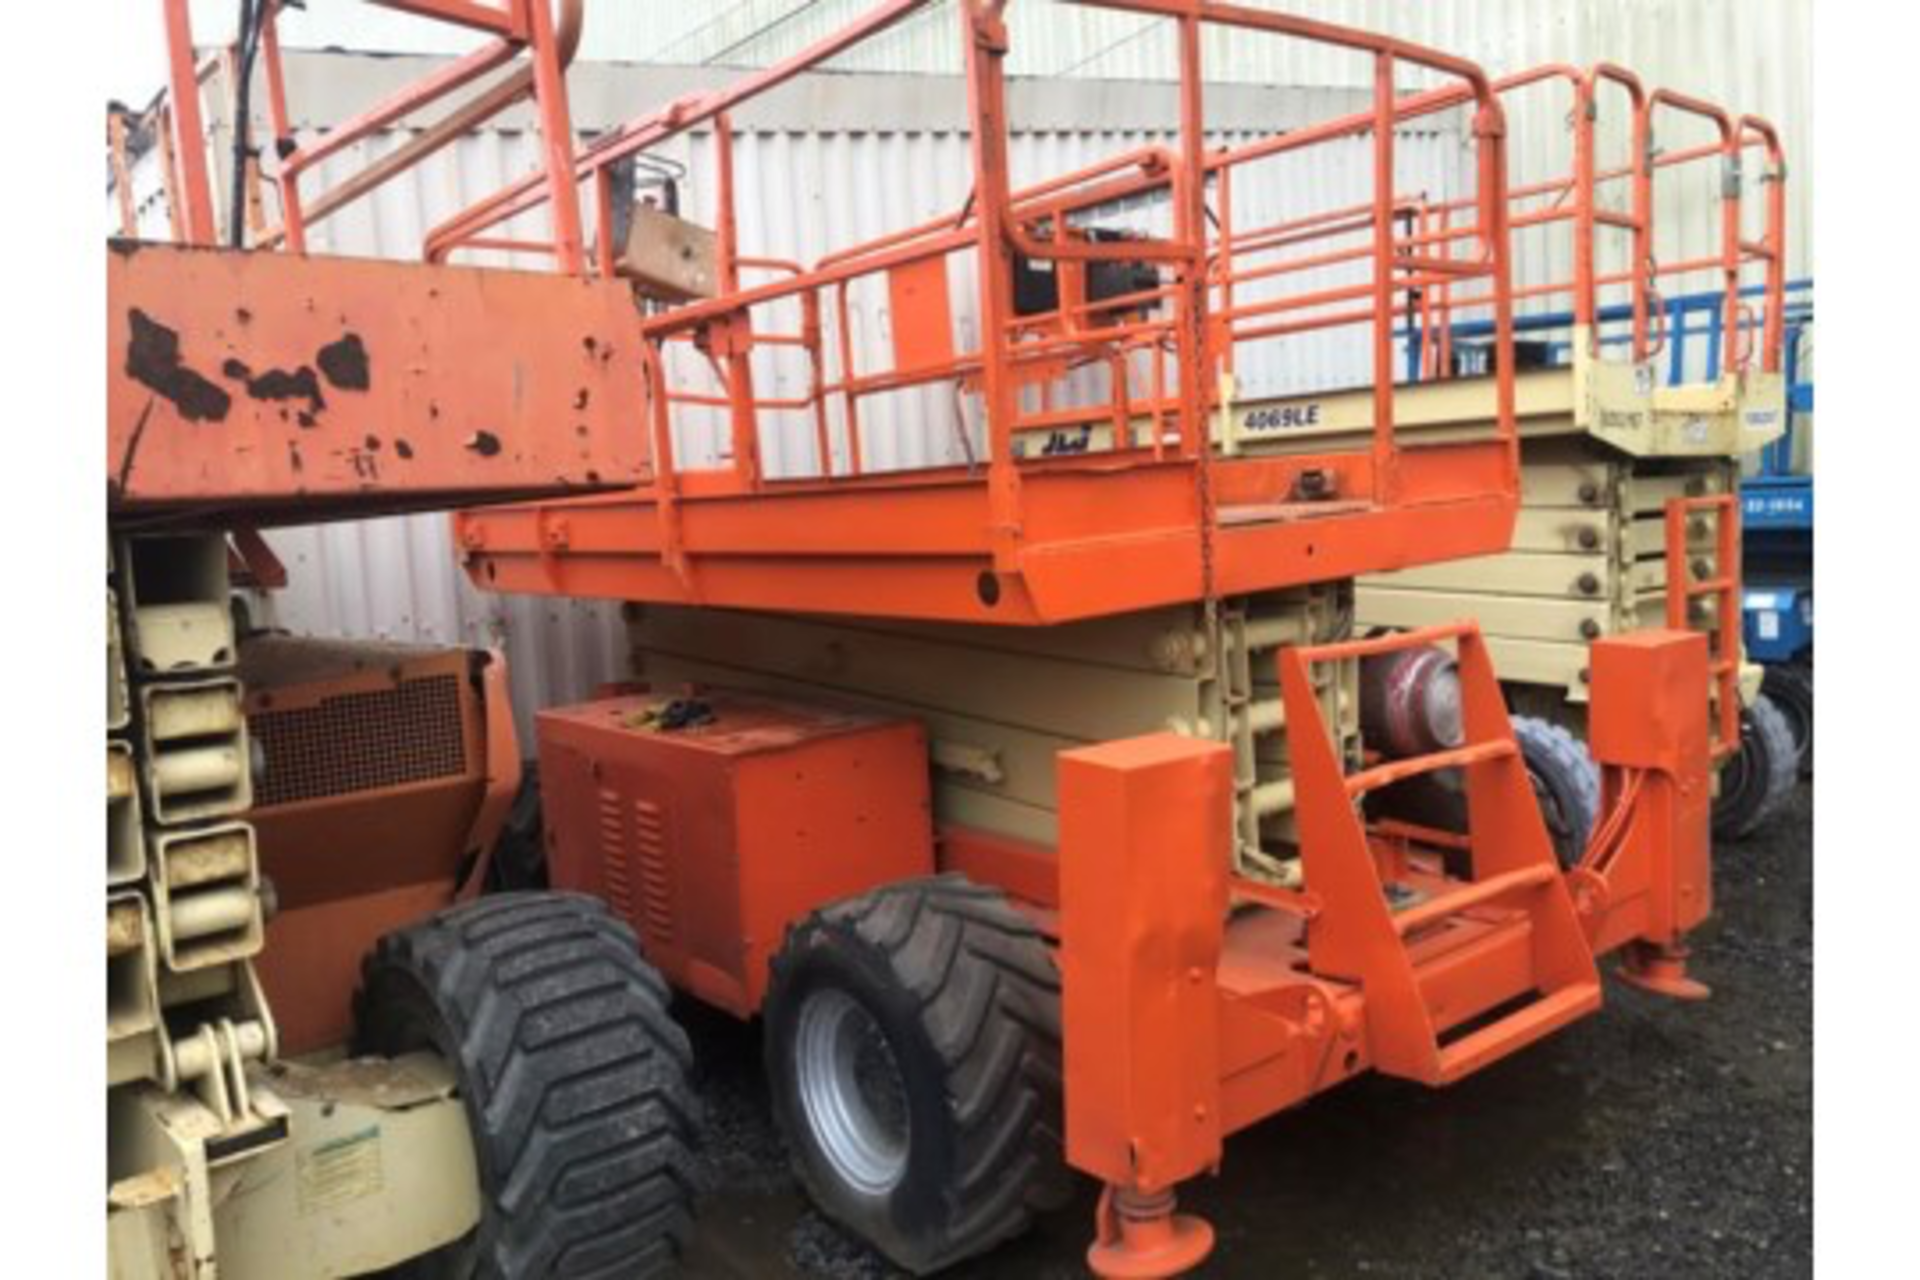 Lot 35 - JLG 33RTS Scissor Lift 4x4